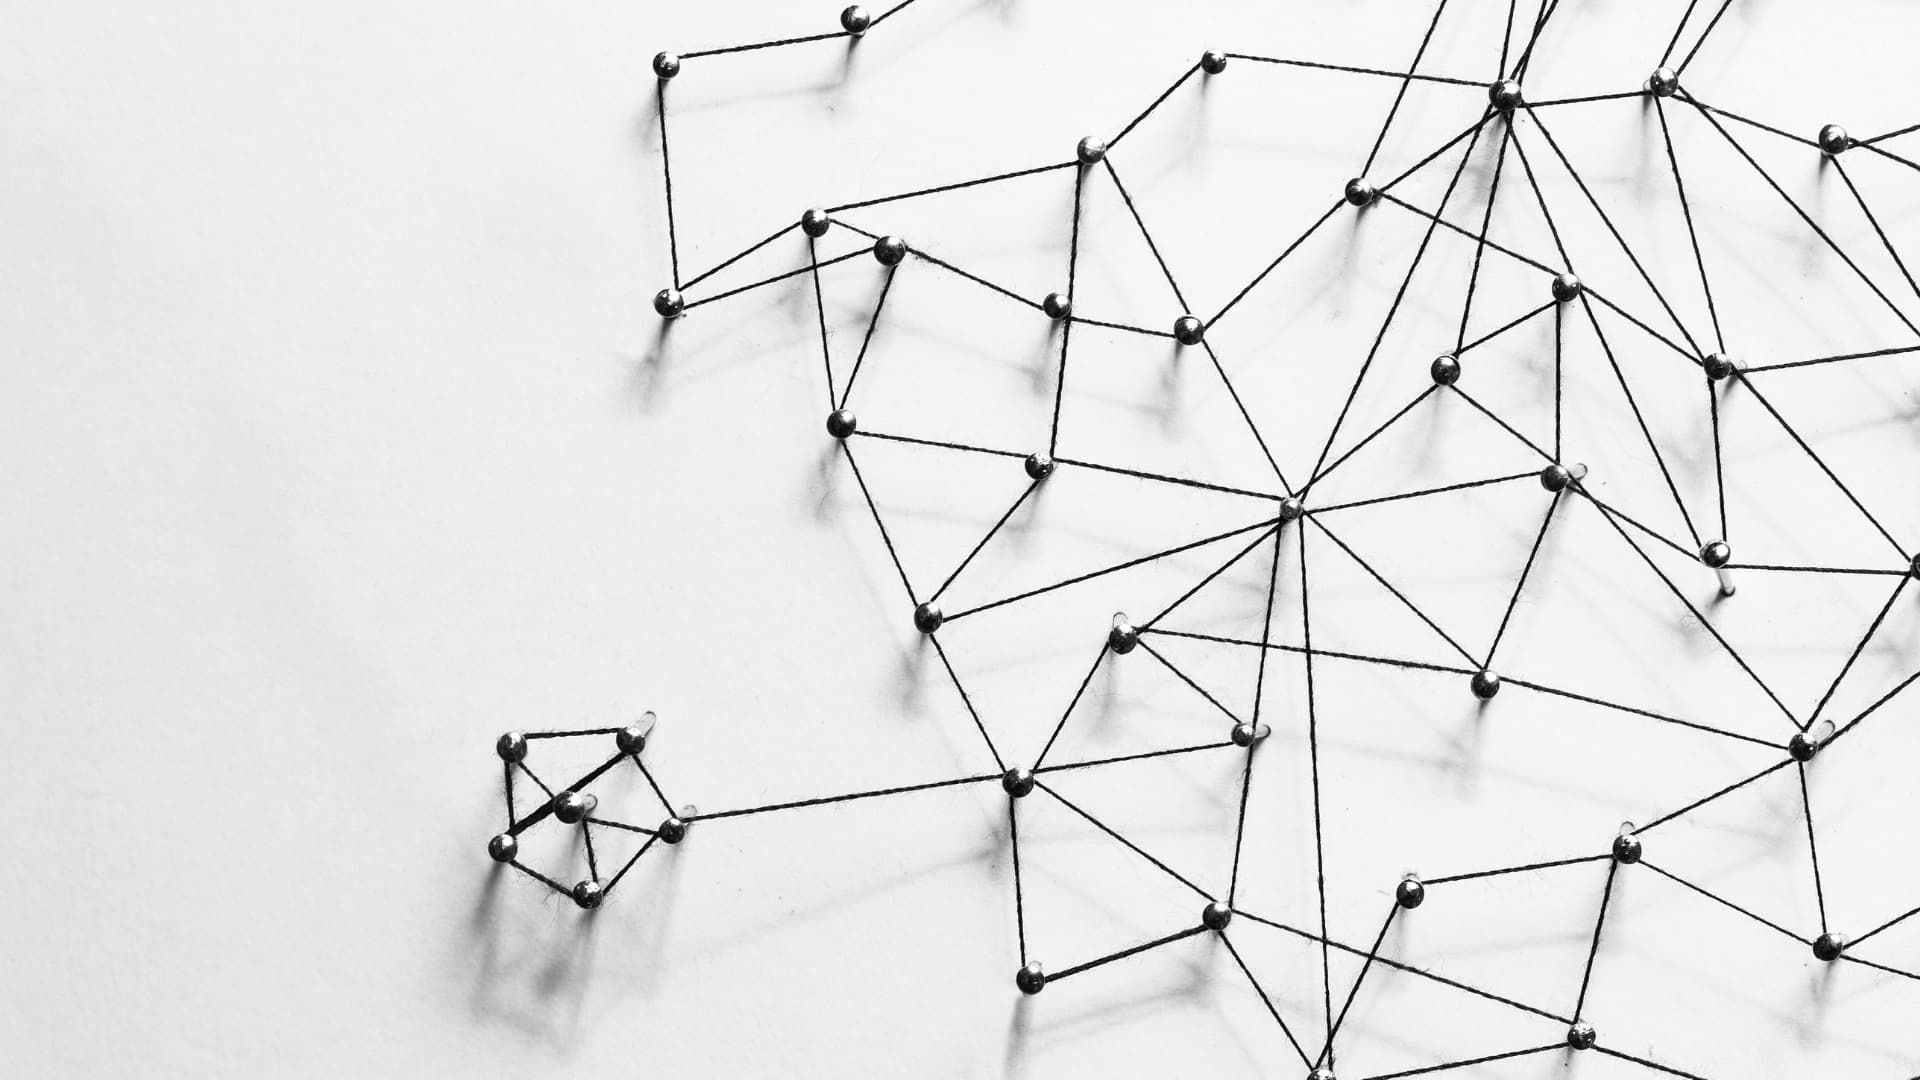 Community networks connection